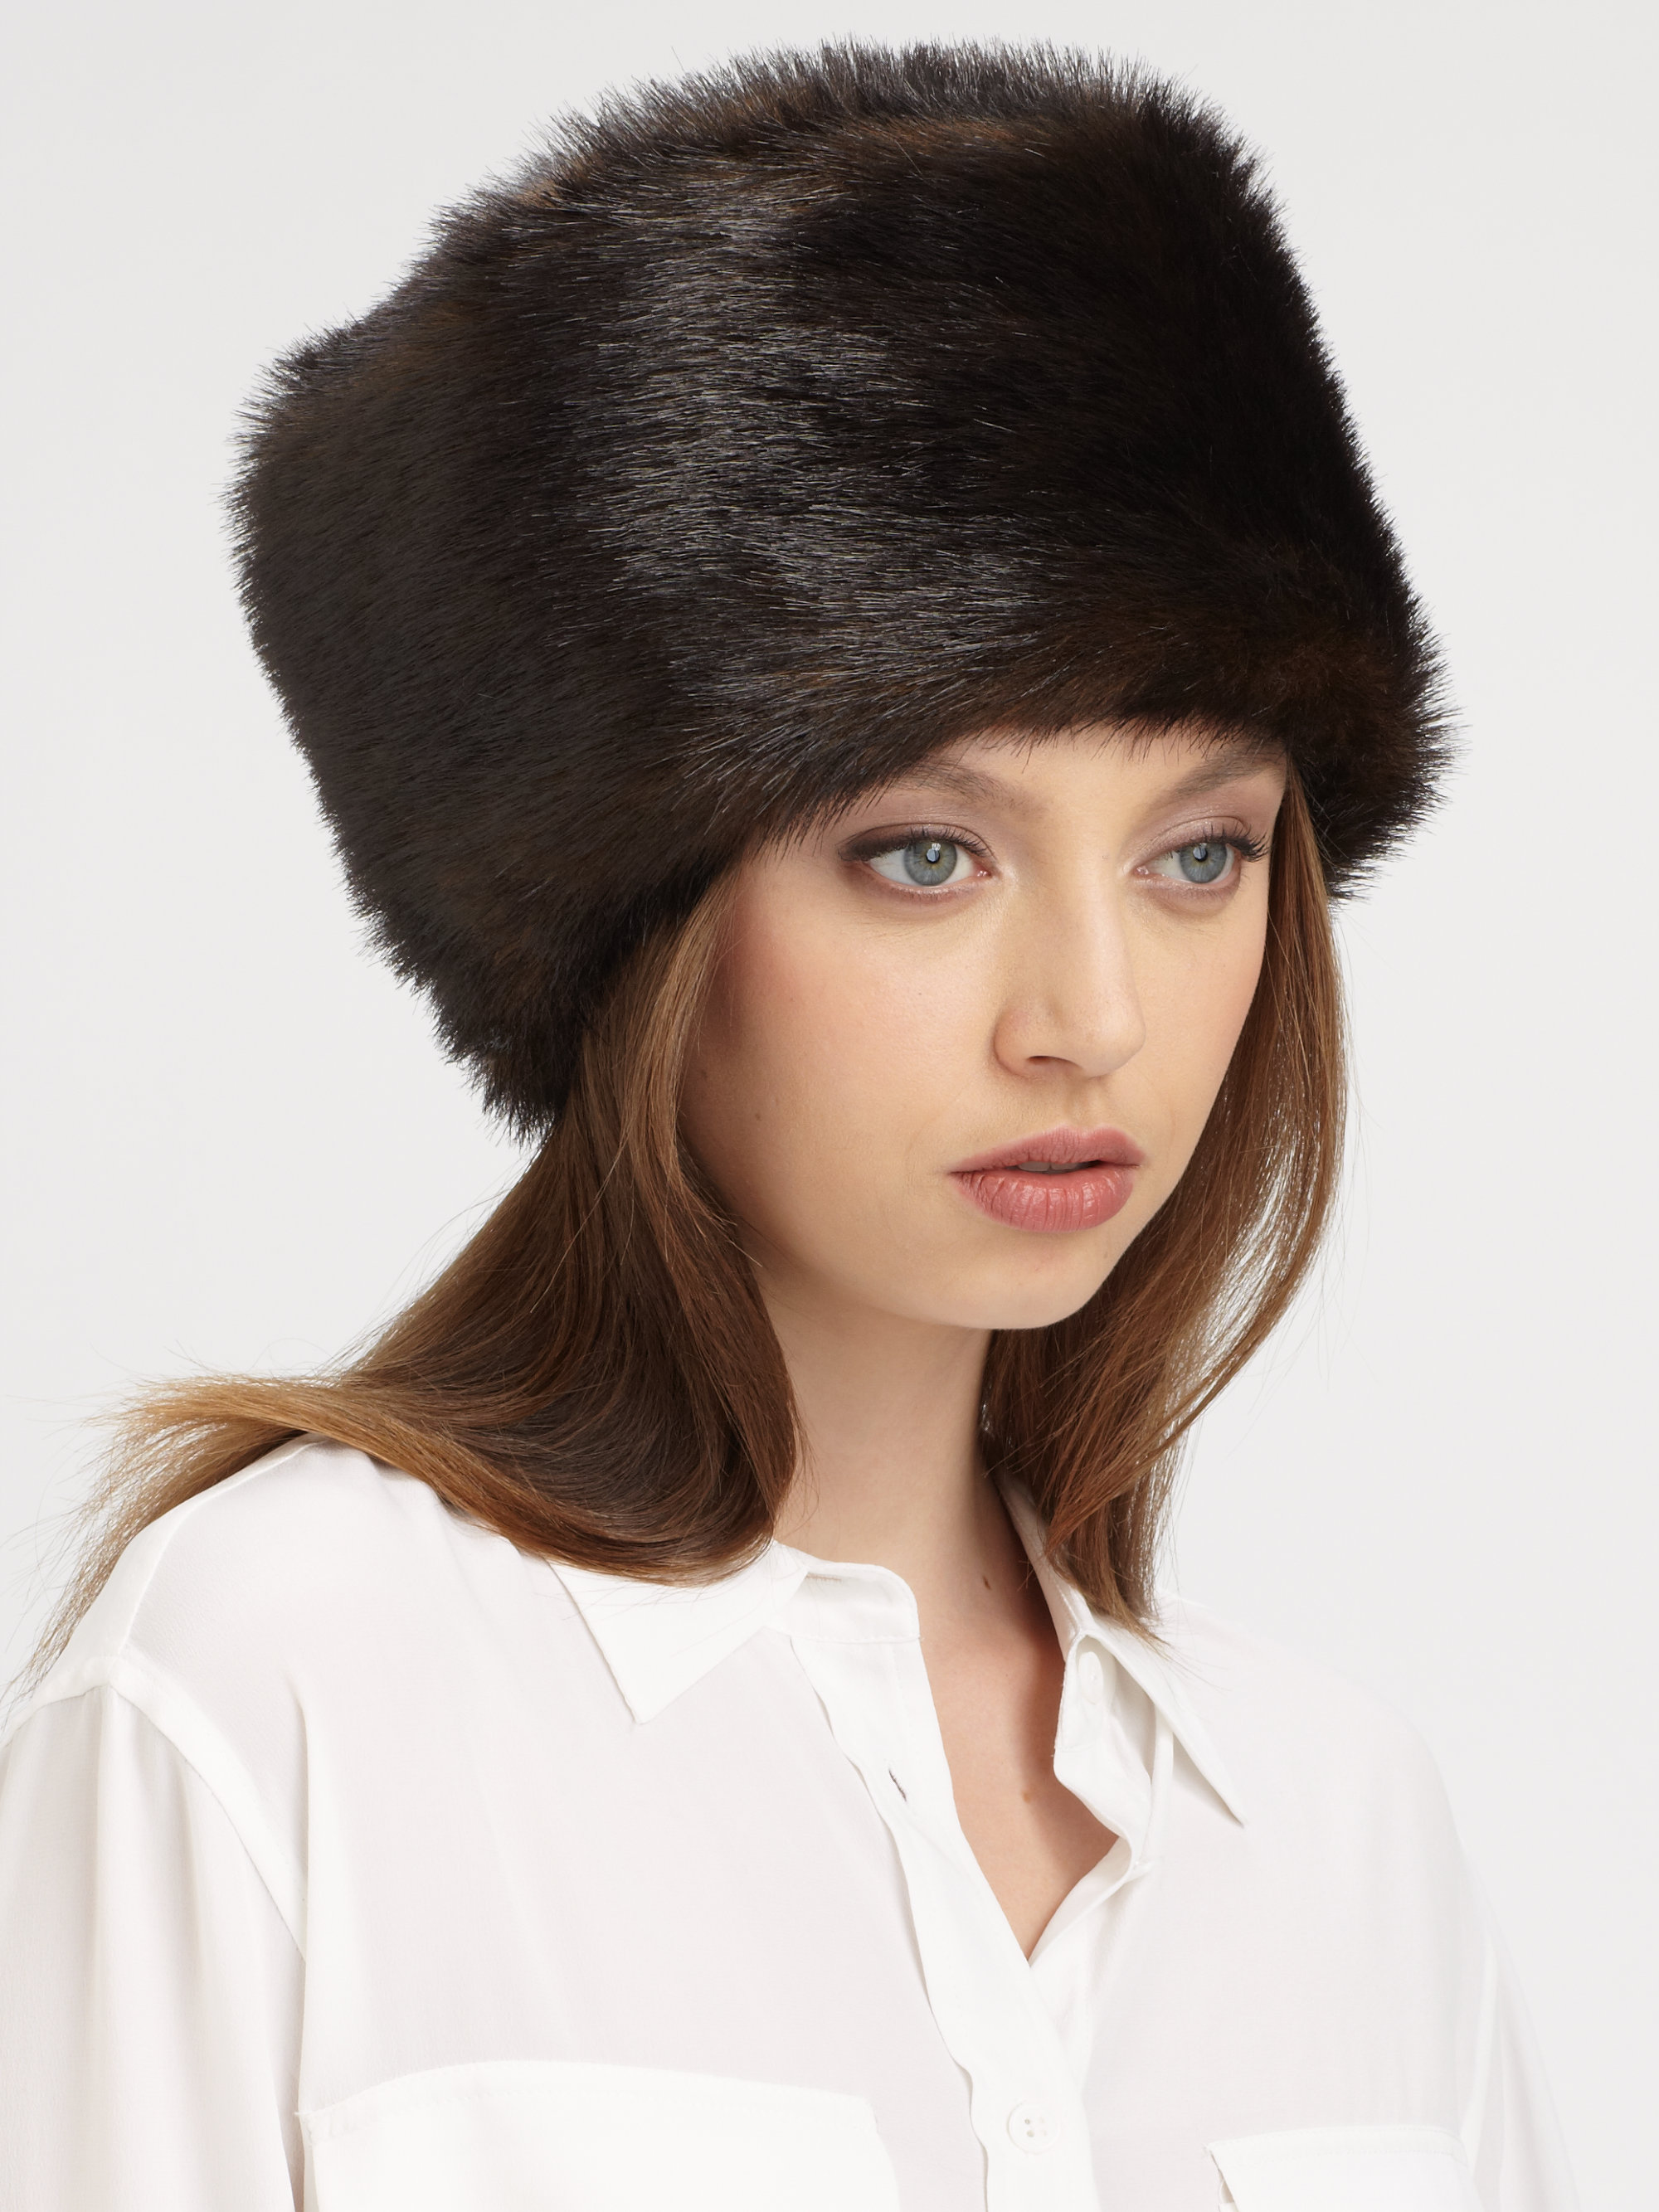 Lyst - Saks Fifth Avenue Russian Sable Faux Fur Hat in Black ef564090137